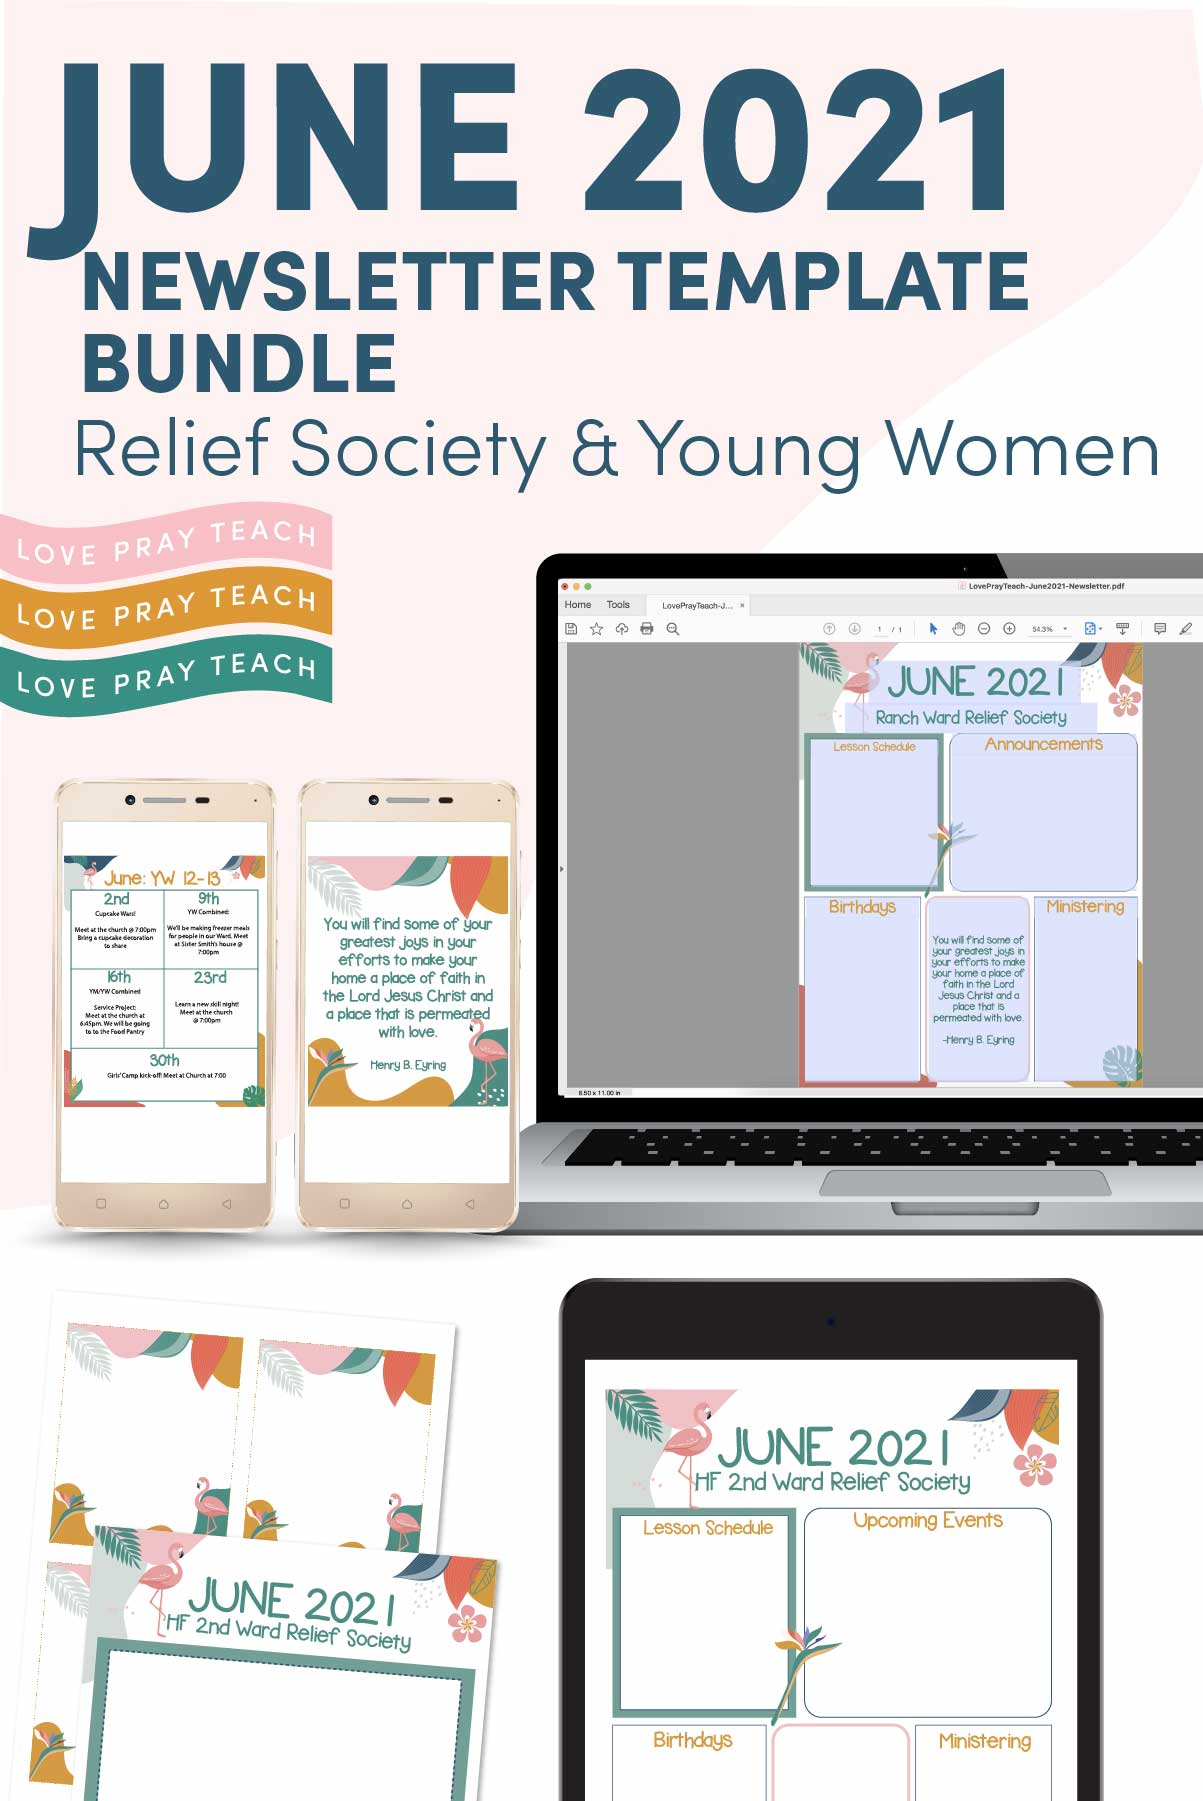 June 2021 Editable Newsletter Template Bundle for Relief Society or Young Women www.LovePrayTeach.com